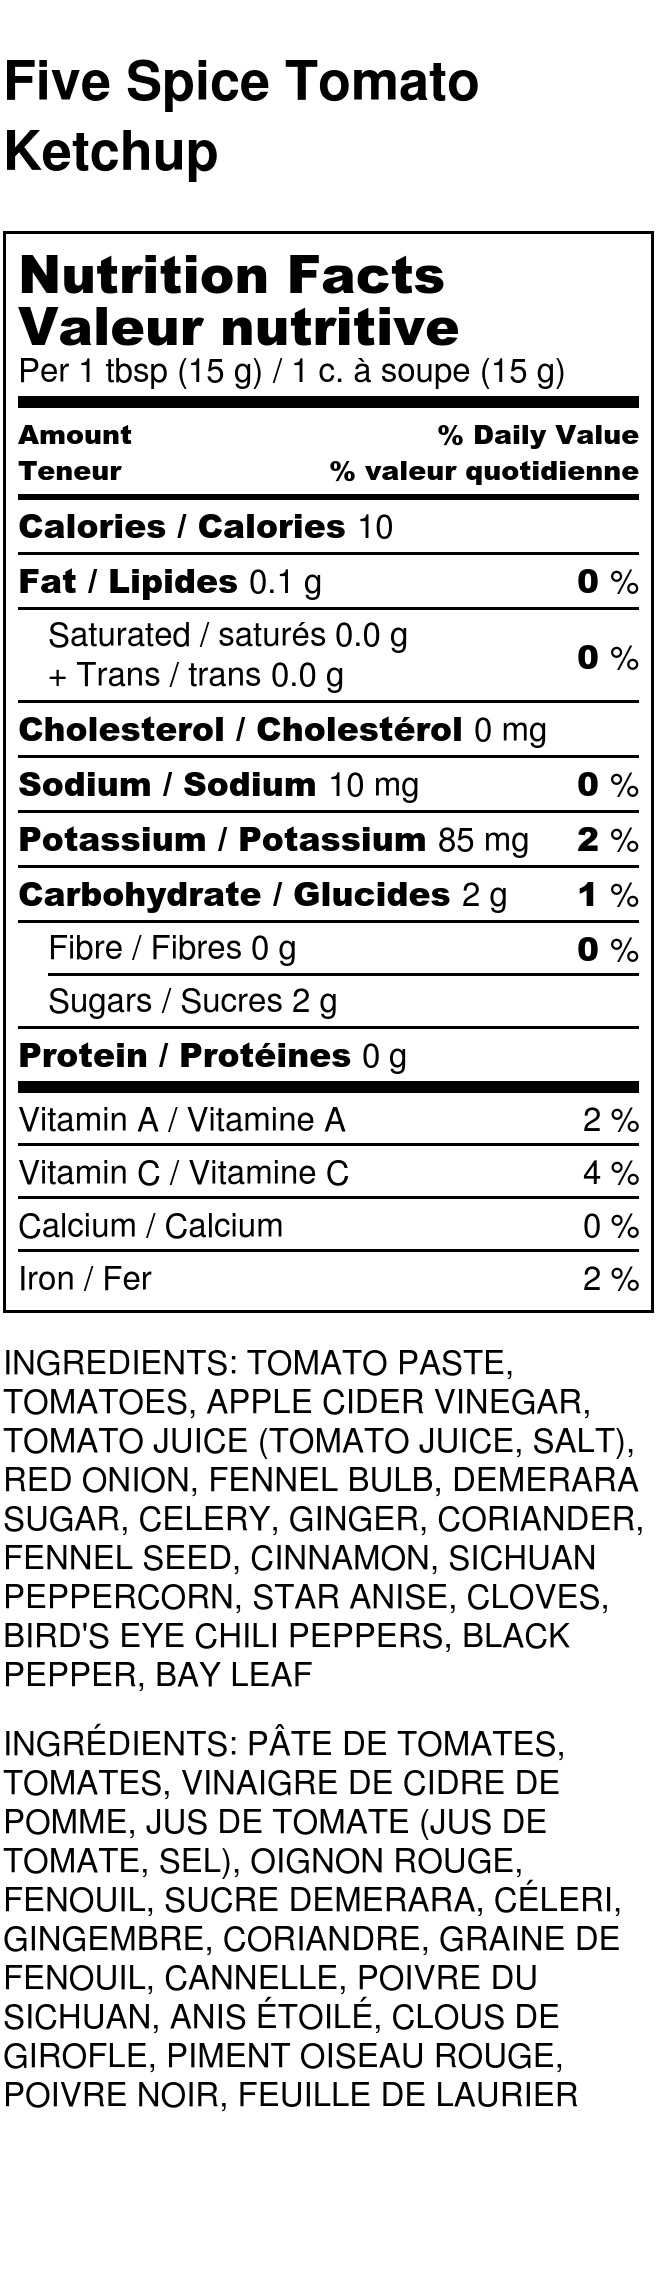 Five Spice Tomato Ketchup - Nutrition Label.jpg